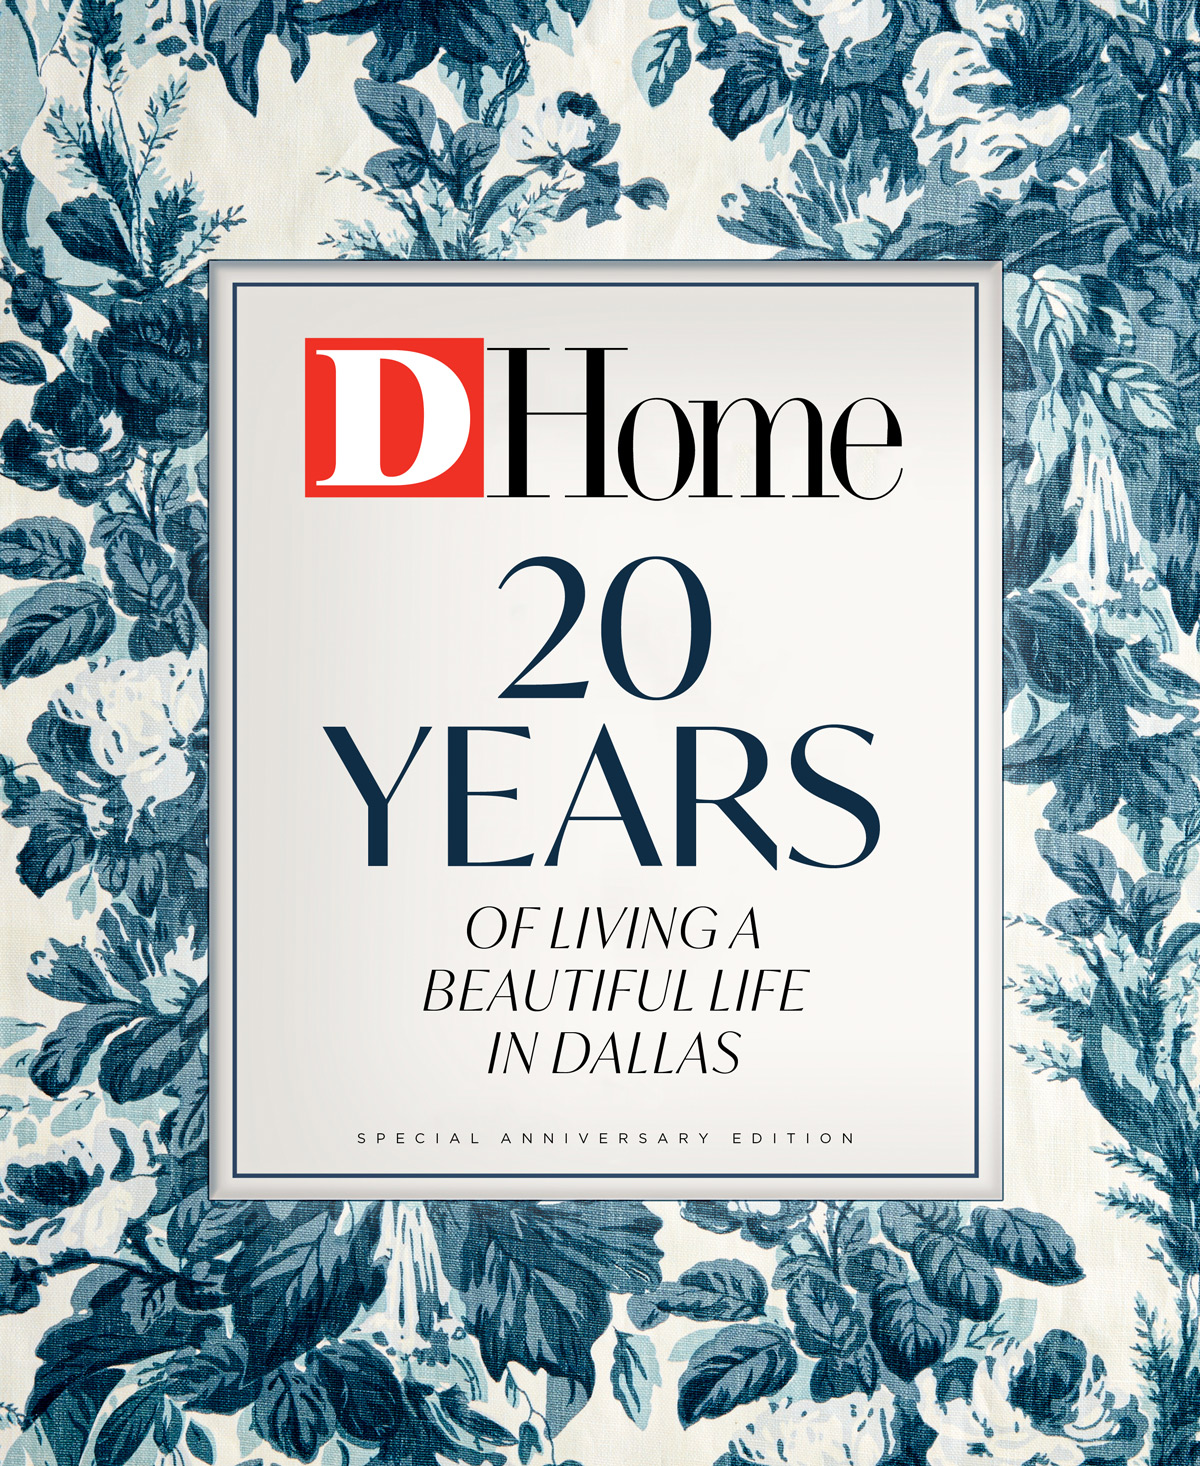 20 Years of Living a Beautiful Life in Dallas 2020 cover